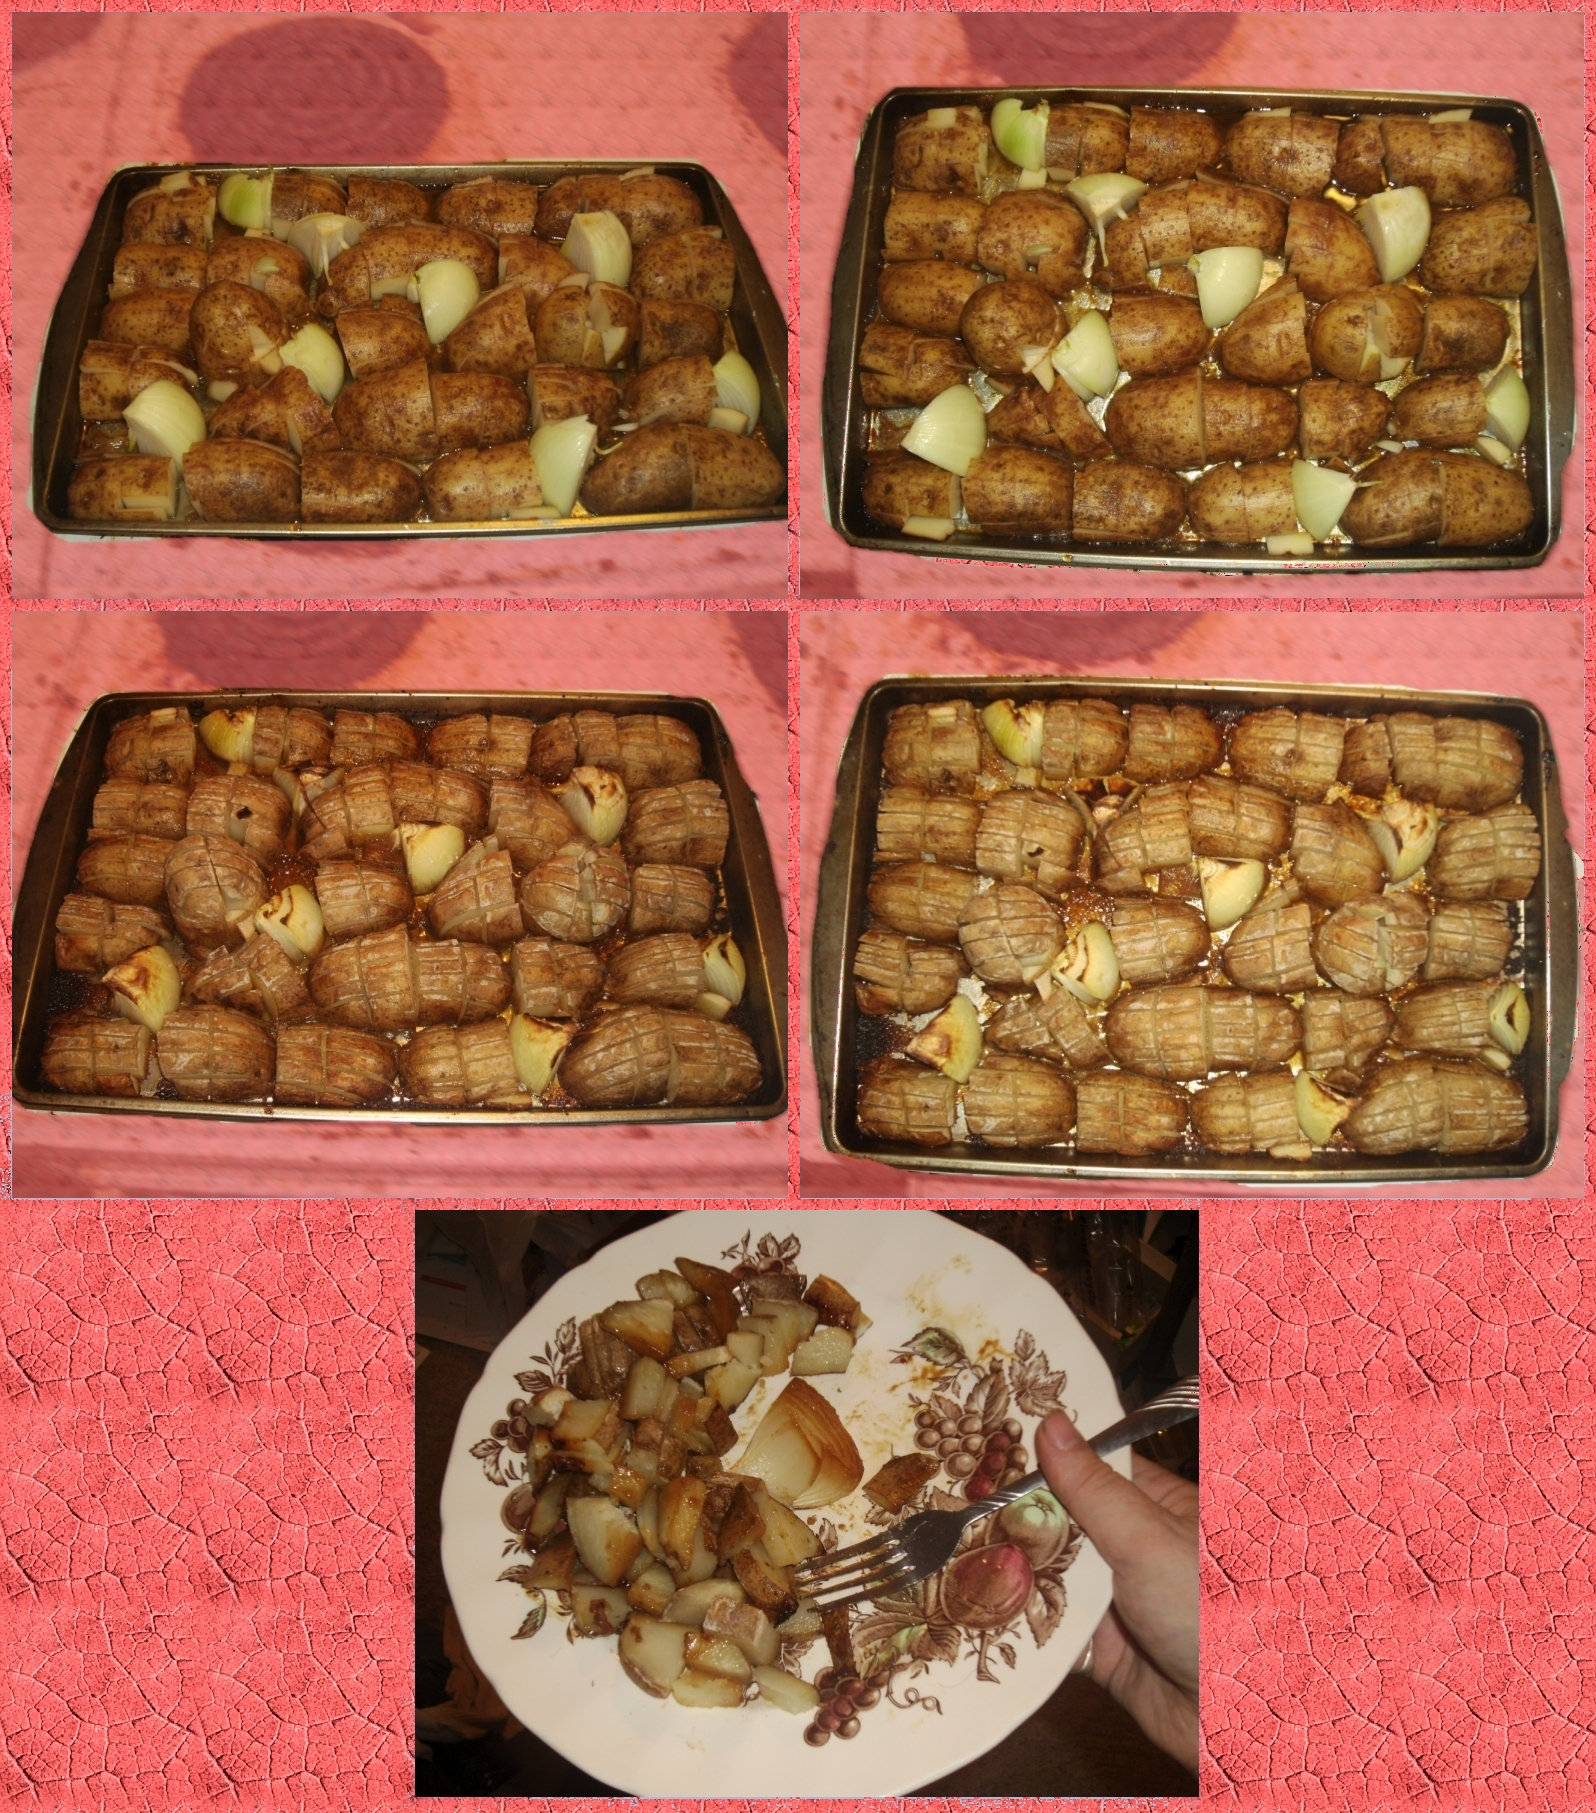 Savory Oven Roasted Potatoes and Onions by Windthin